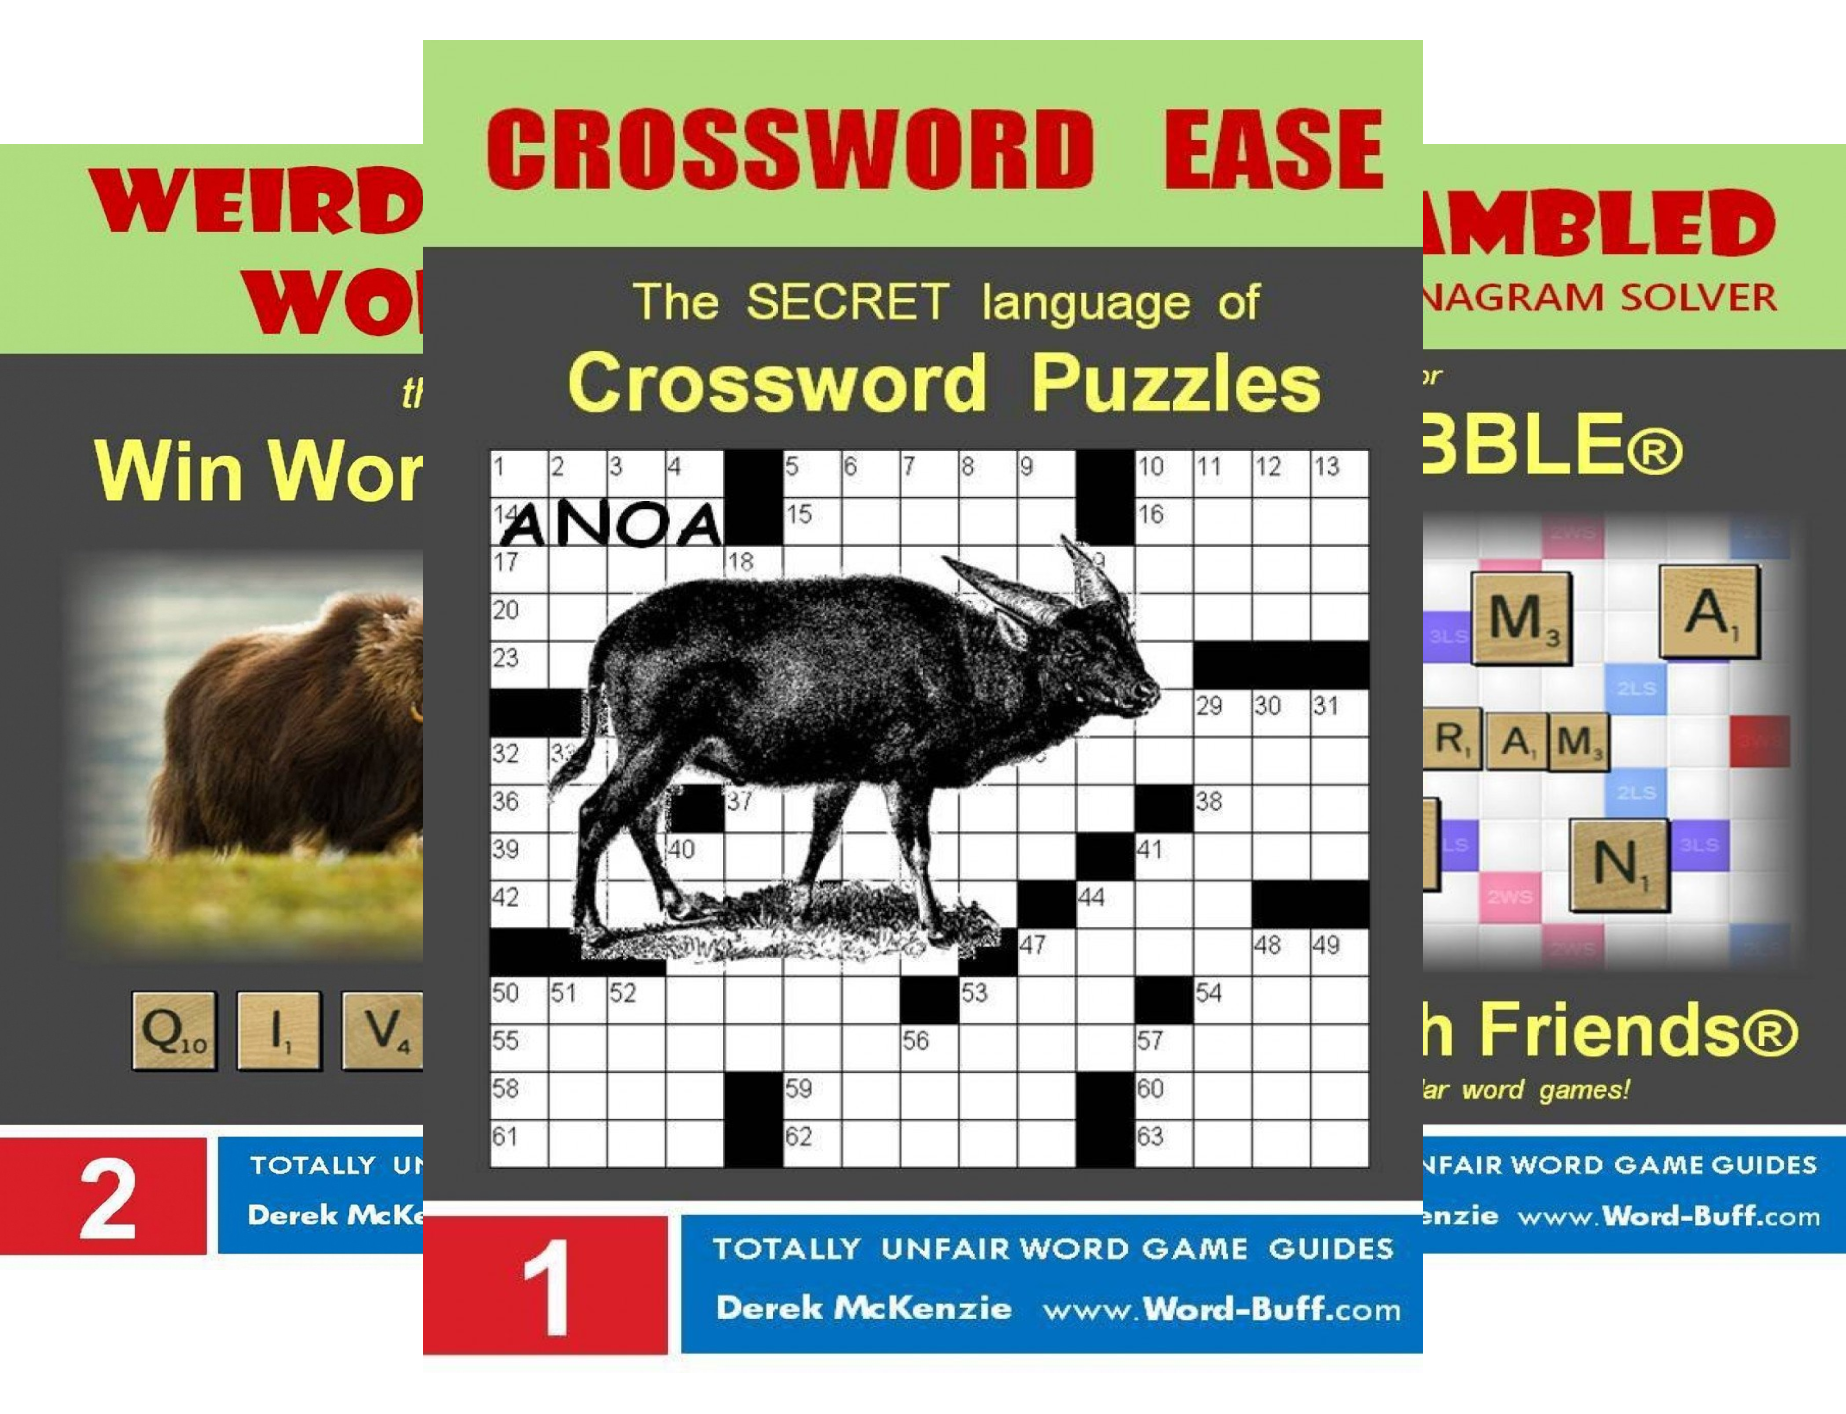 Word Buff's Totally Unfair Word Game Guides (4 Book Series)